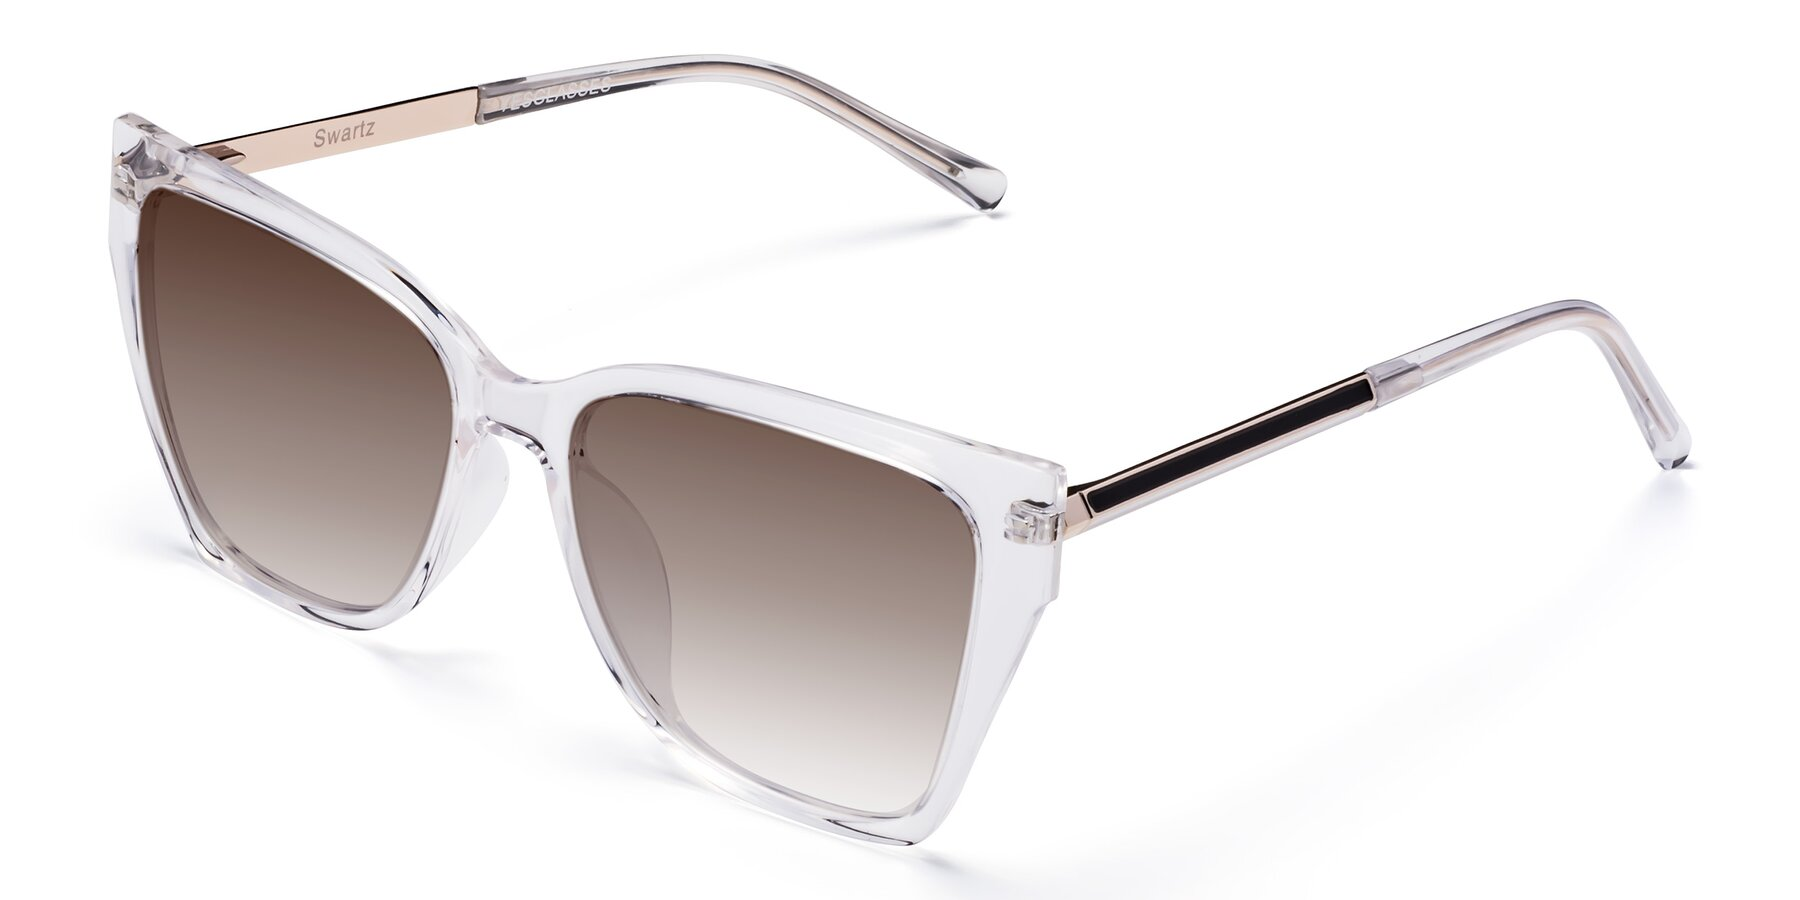 Angle of Swartz in Clear with Brown Gradient Lenses